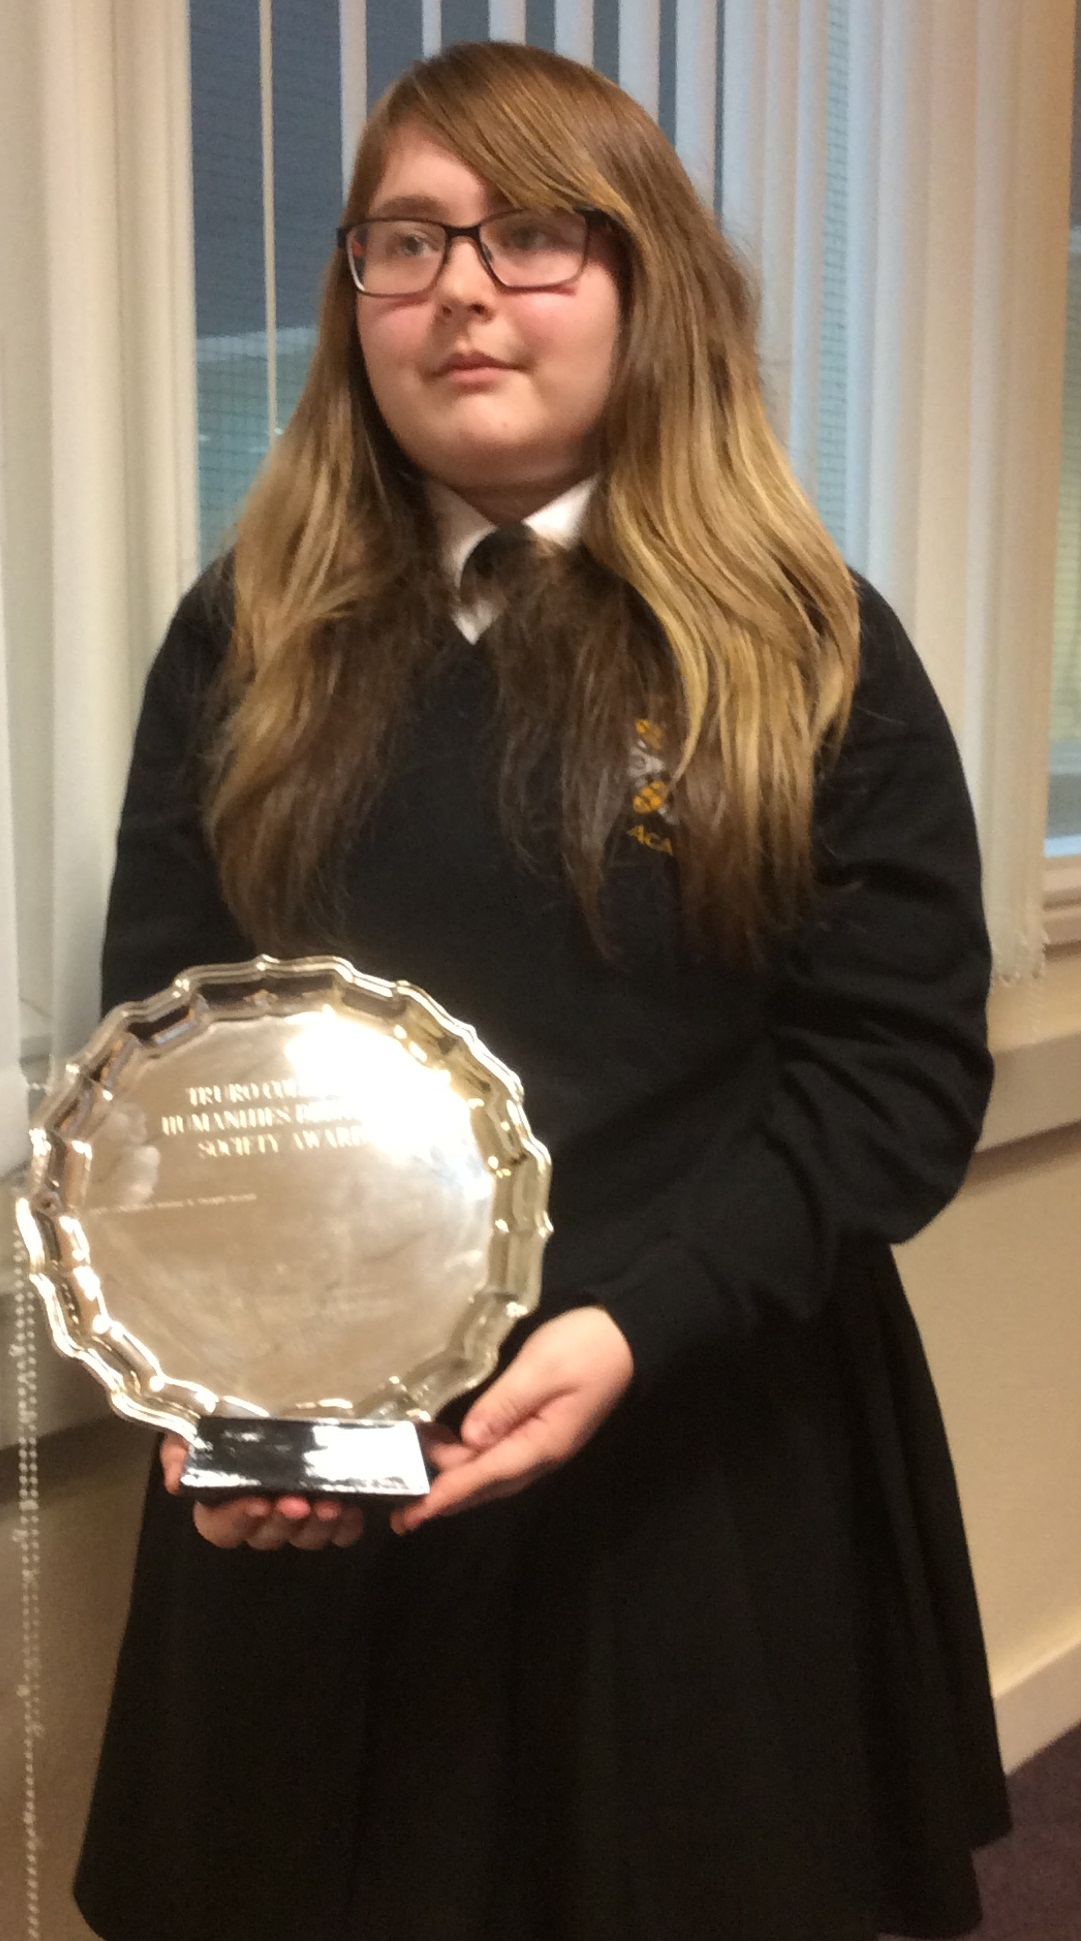 Well done Neve